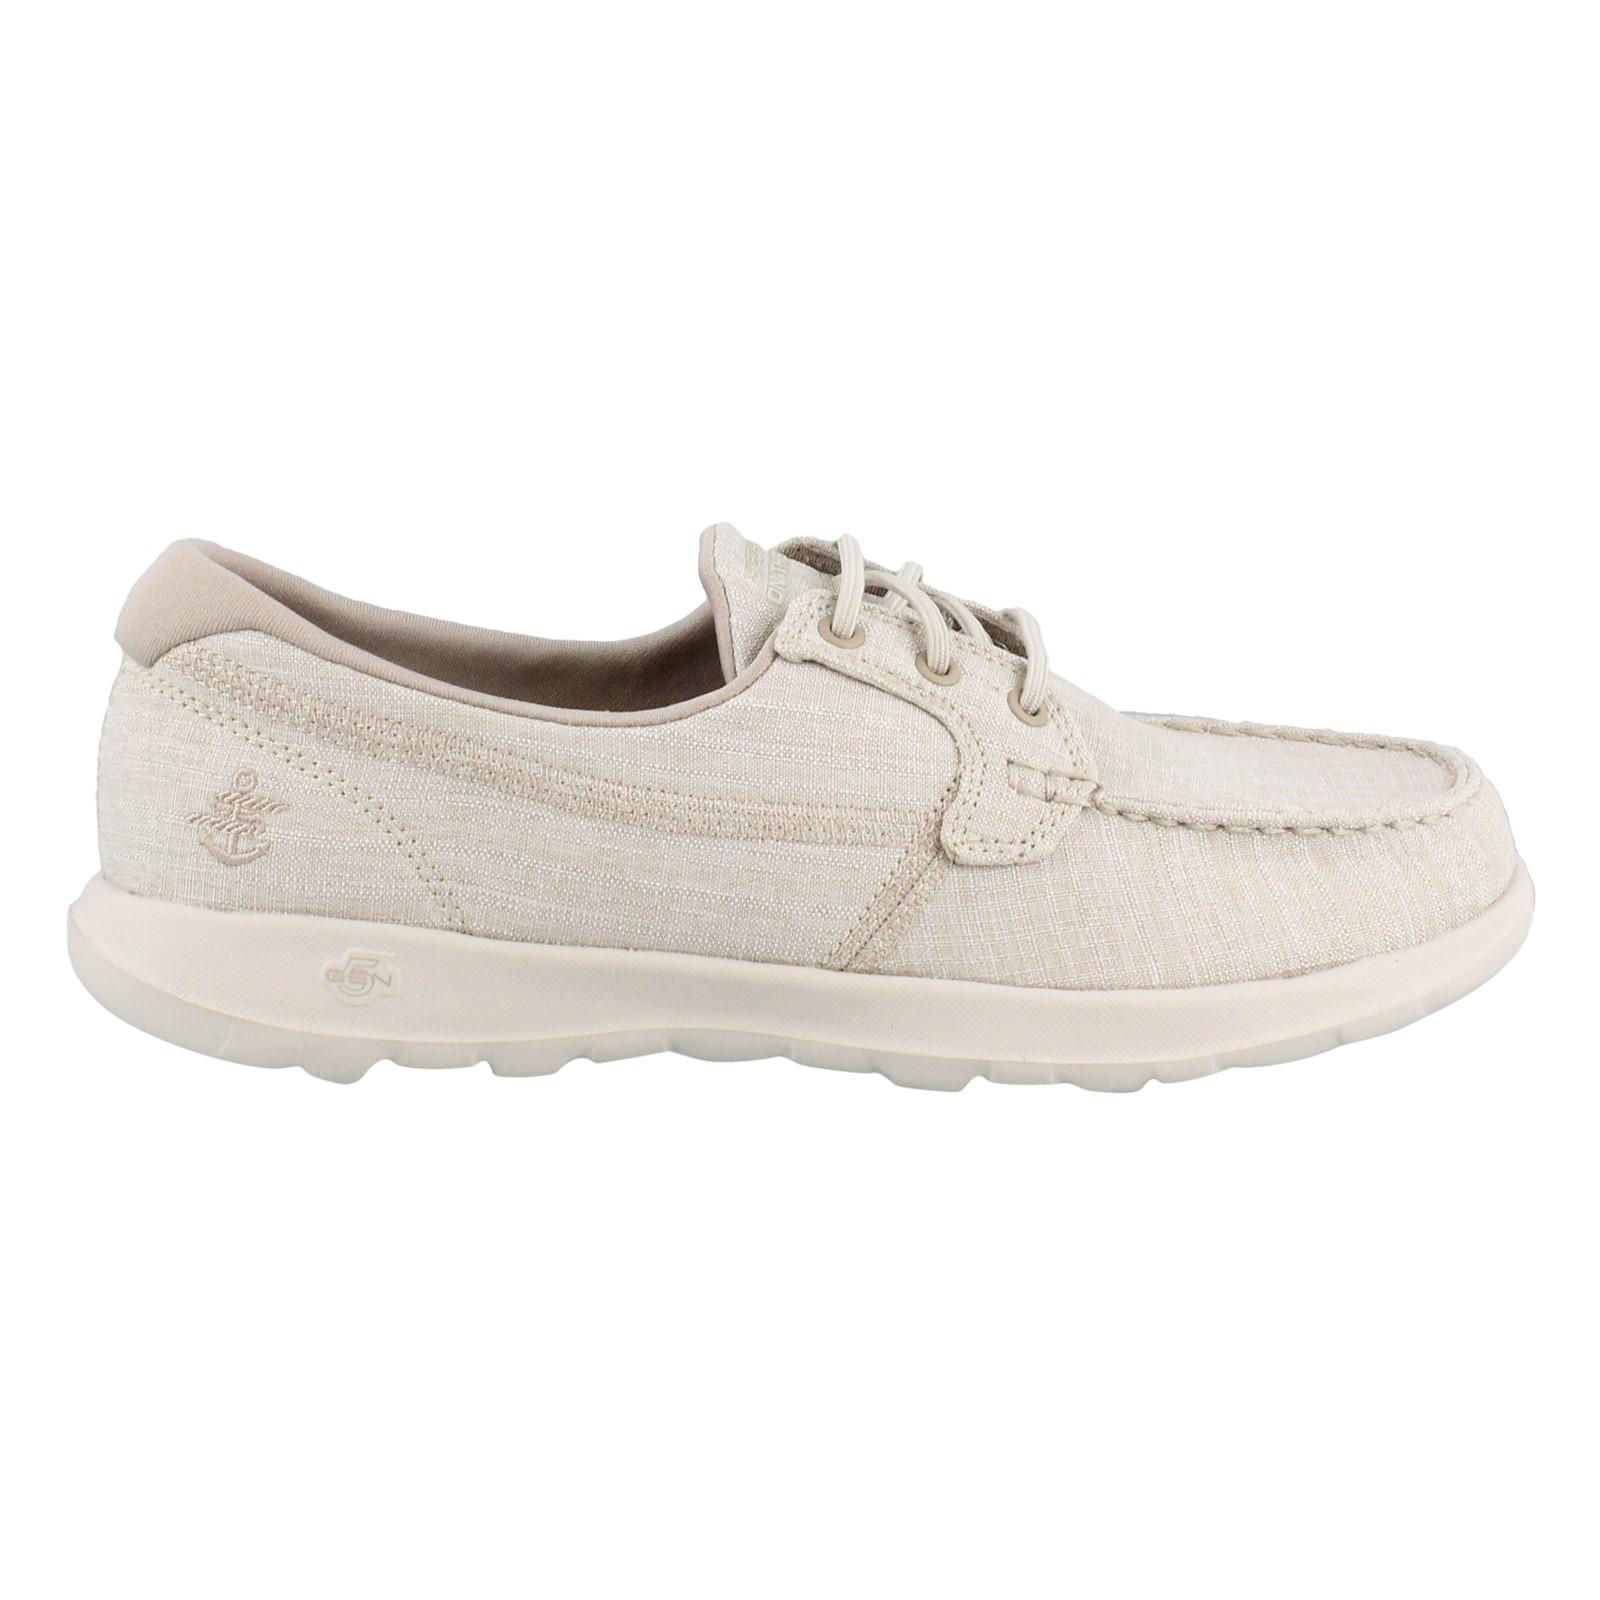 Women's Skechers Performance, Go Walk Lite Isla Boat Shoes